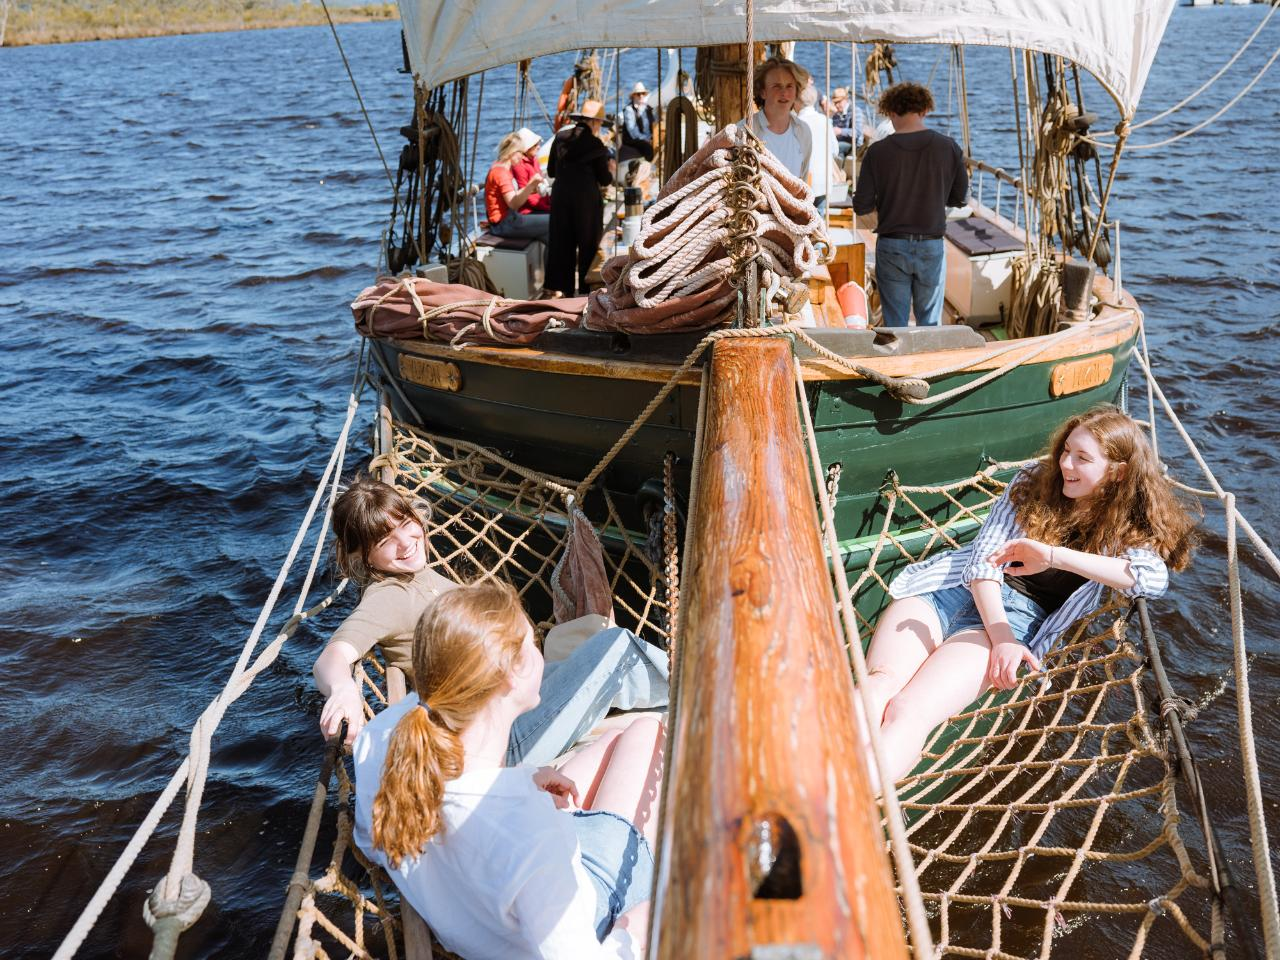 The Mini Wooden Boat Festival 2021 Franklin - Hobart. 3 days cruising + Parade of Sail + Fireworks